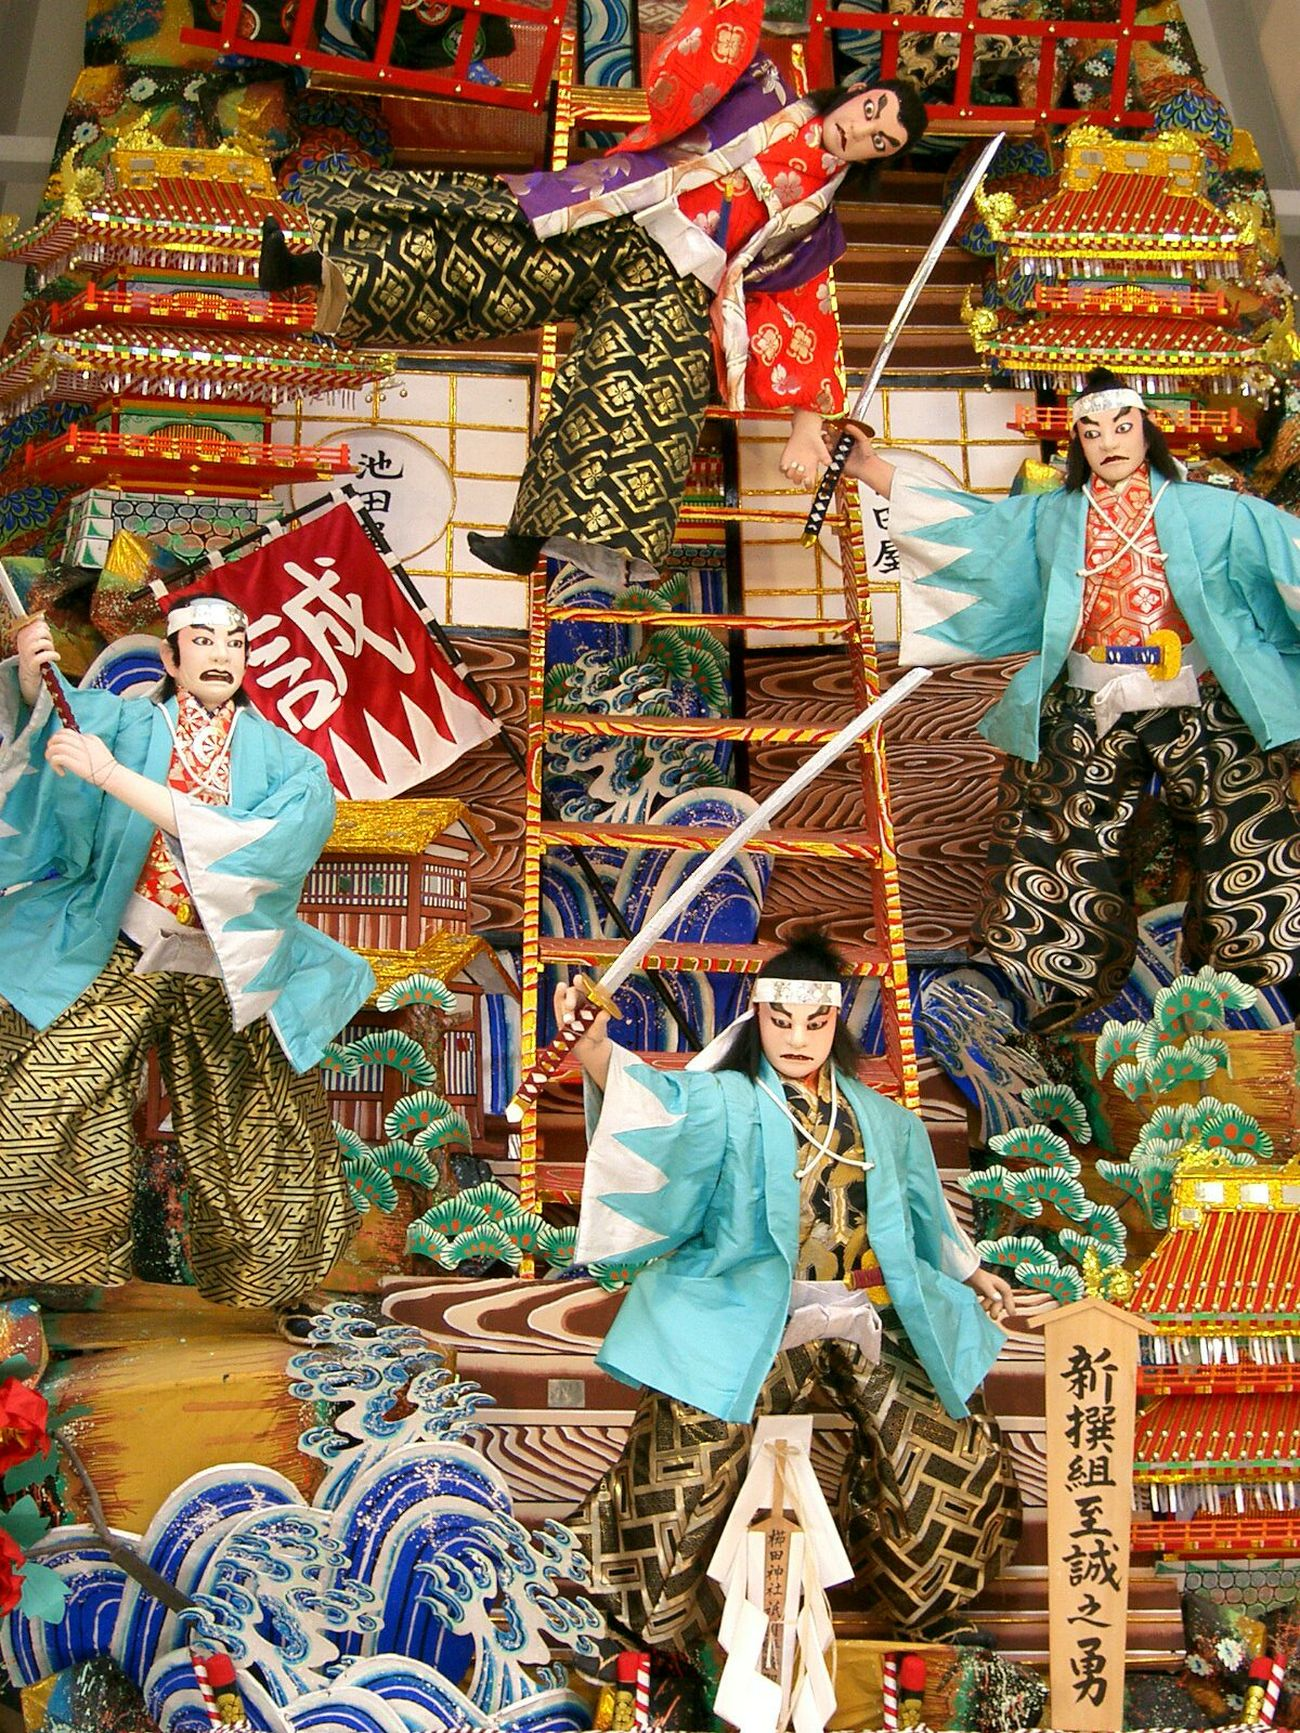 Japan Shinsengumi Samurai Hakata Dontaku Festival Old Japanese Style Love Japan Japanese Traditional Japon Japón Japón💙 43 Golden Moments Ultimate Japan